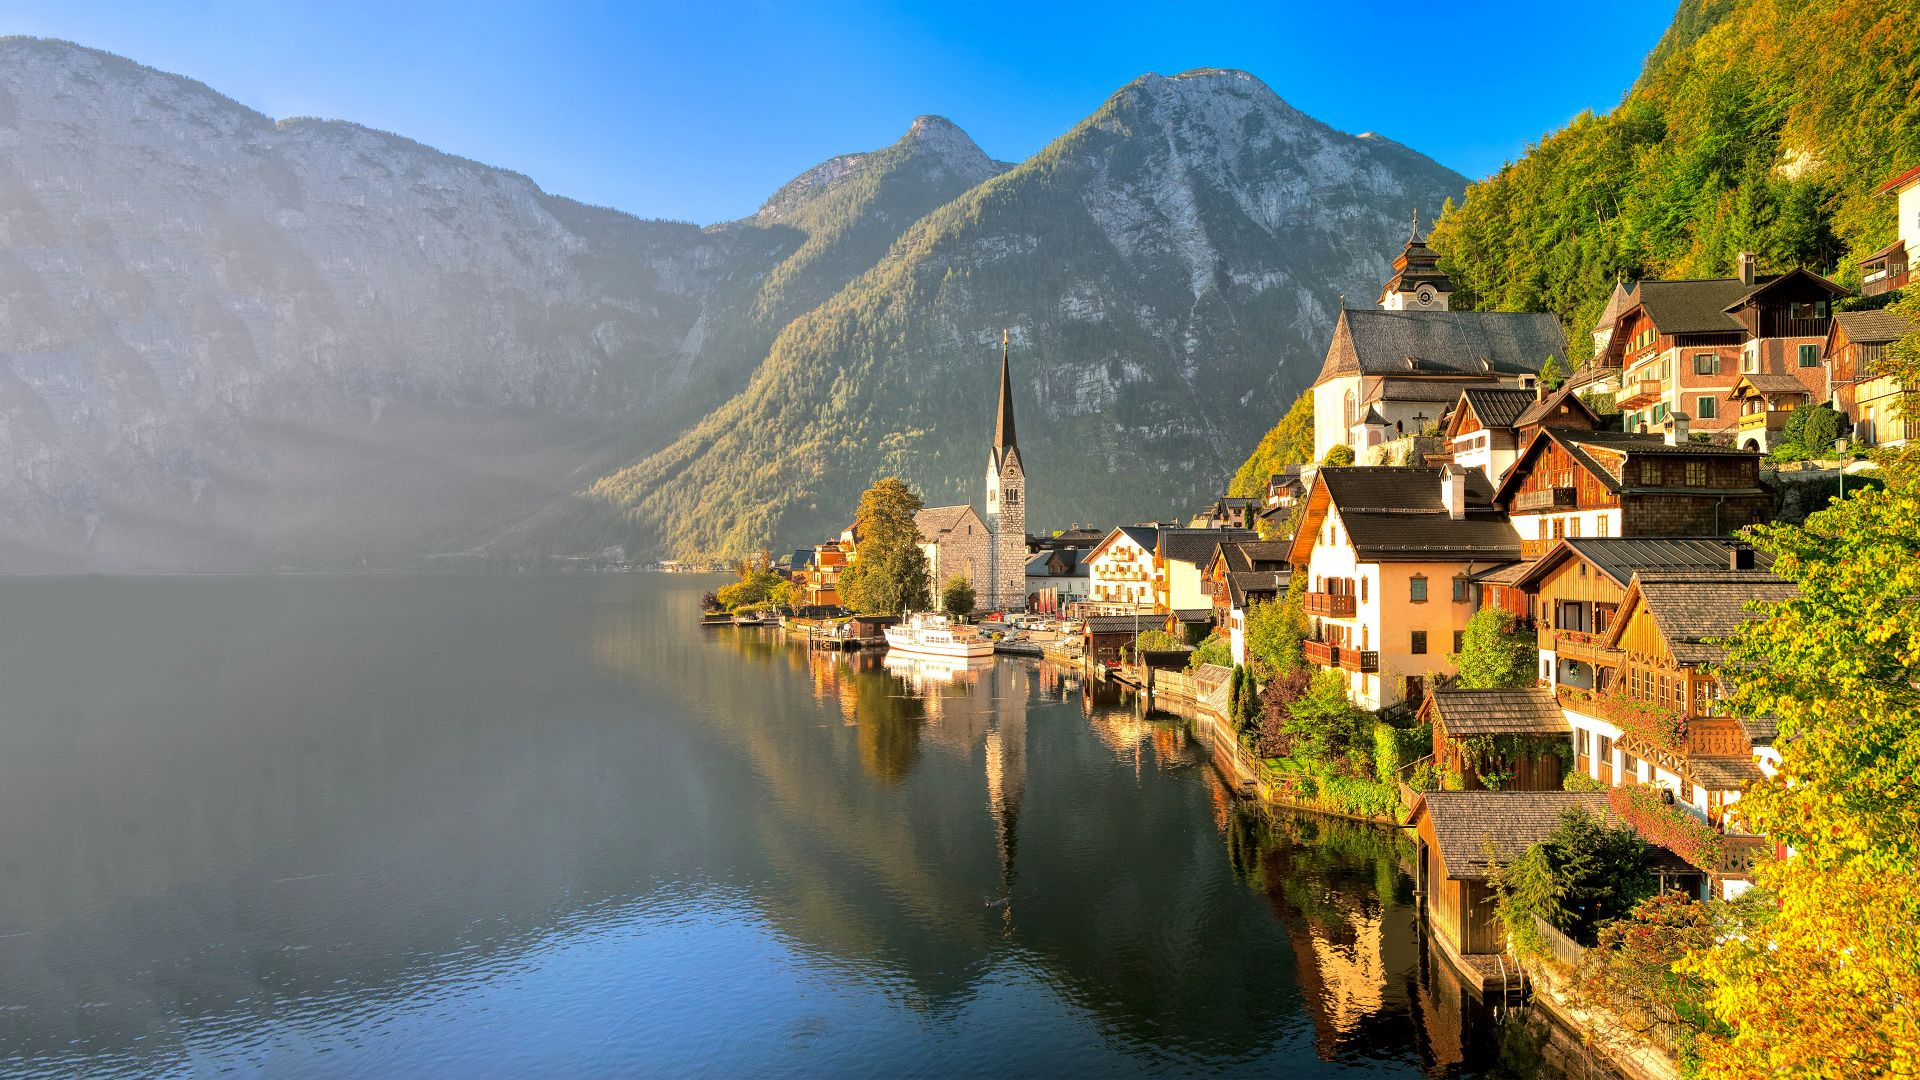 Hallstatt, Gmunden, Austria, tourism, travel, resort (horizontal)